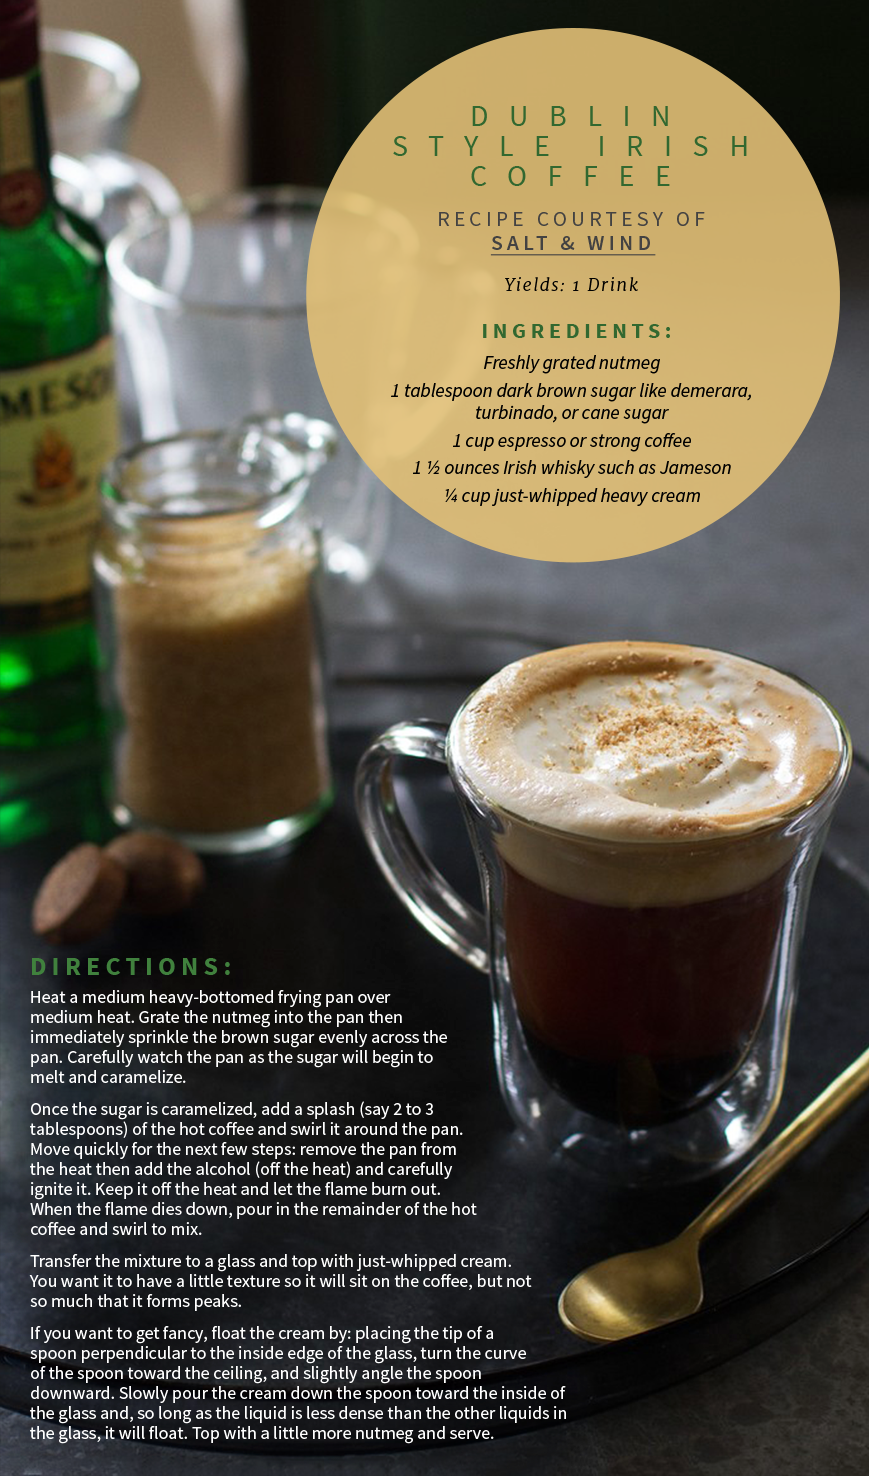 Irish coffee anyone? Check out a delicious sip of the